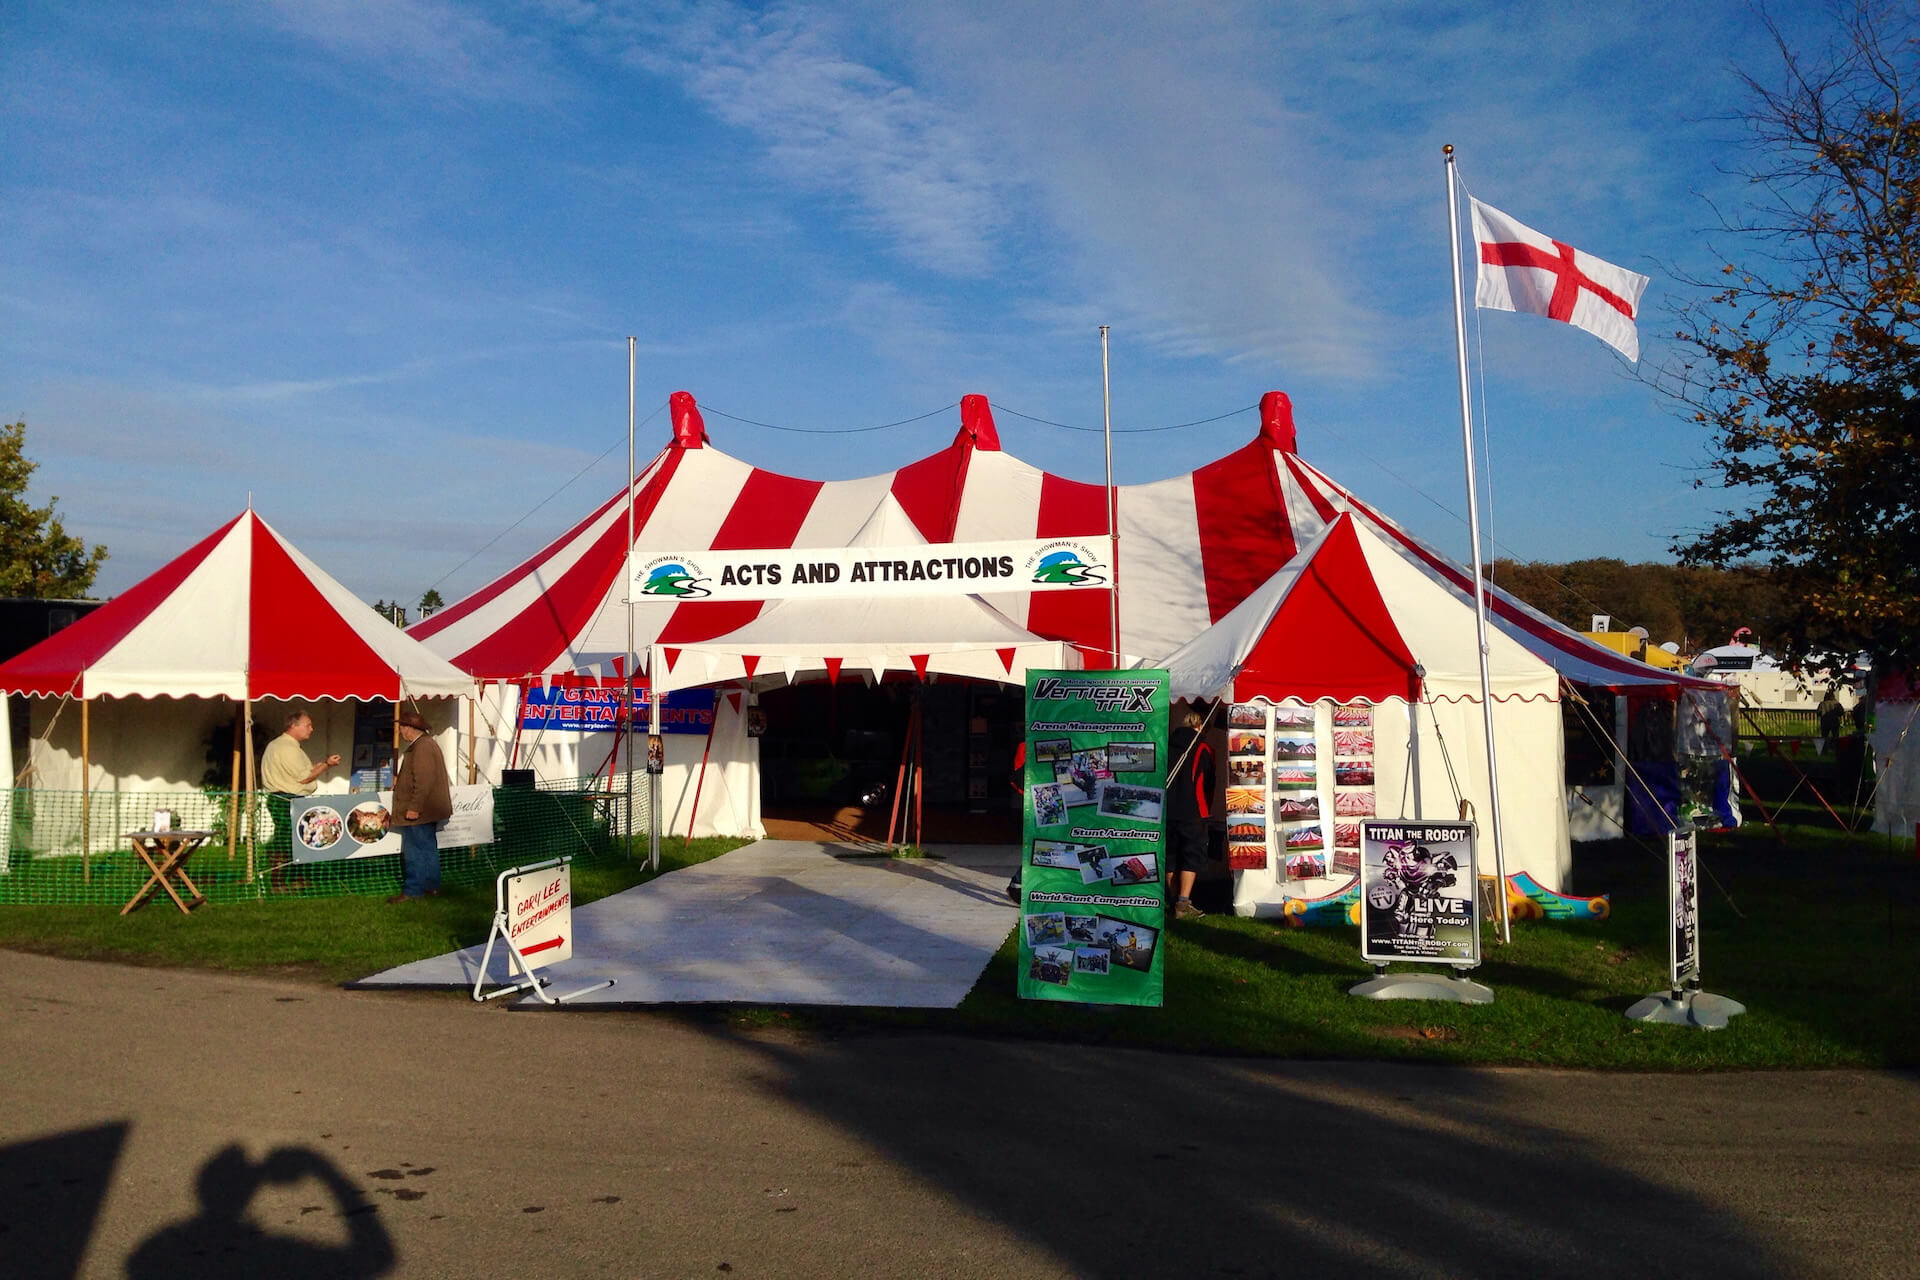 Acts and Attractions tent Showman's Show